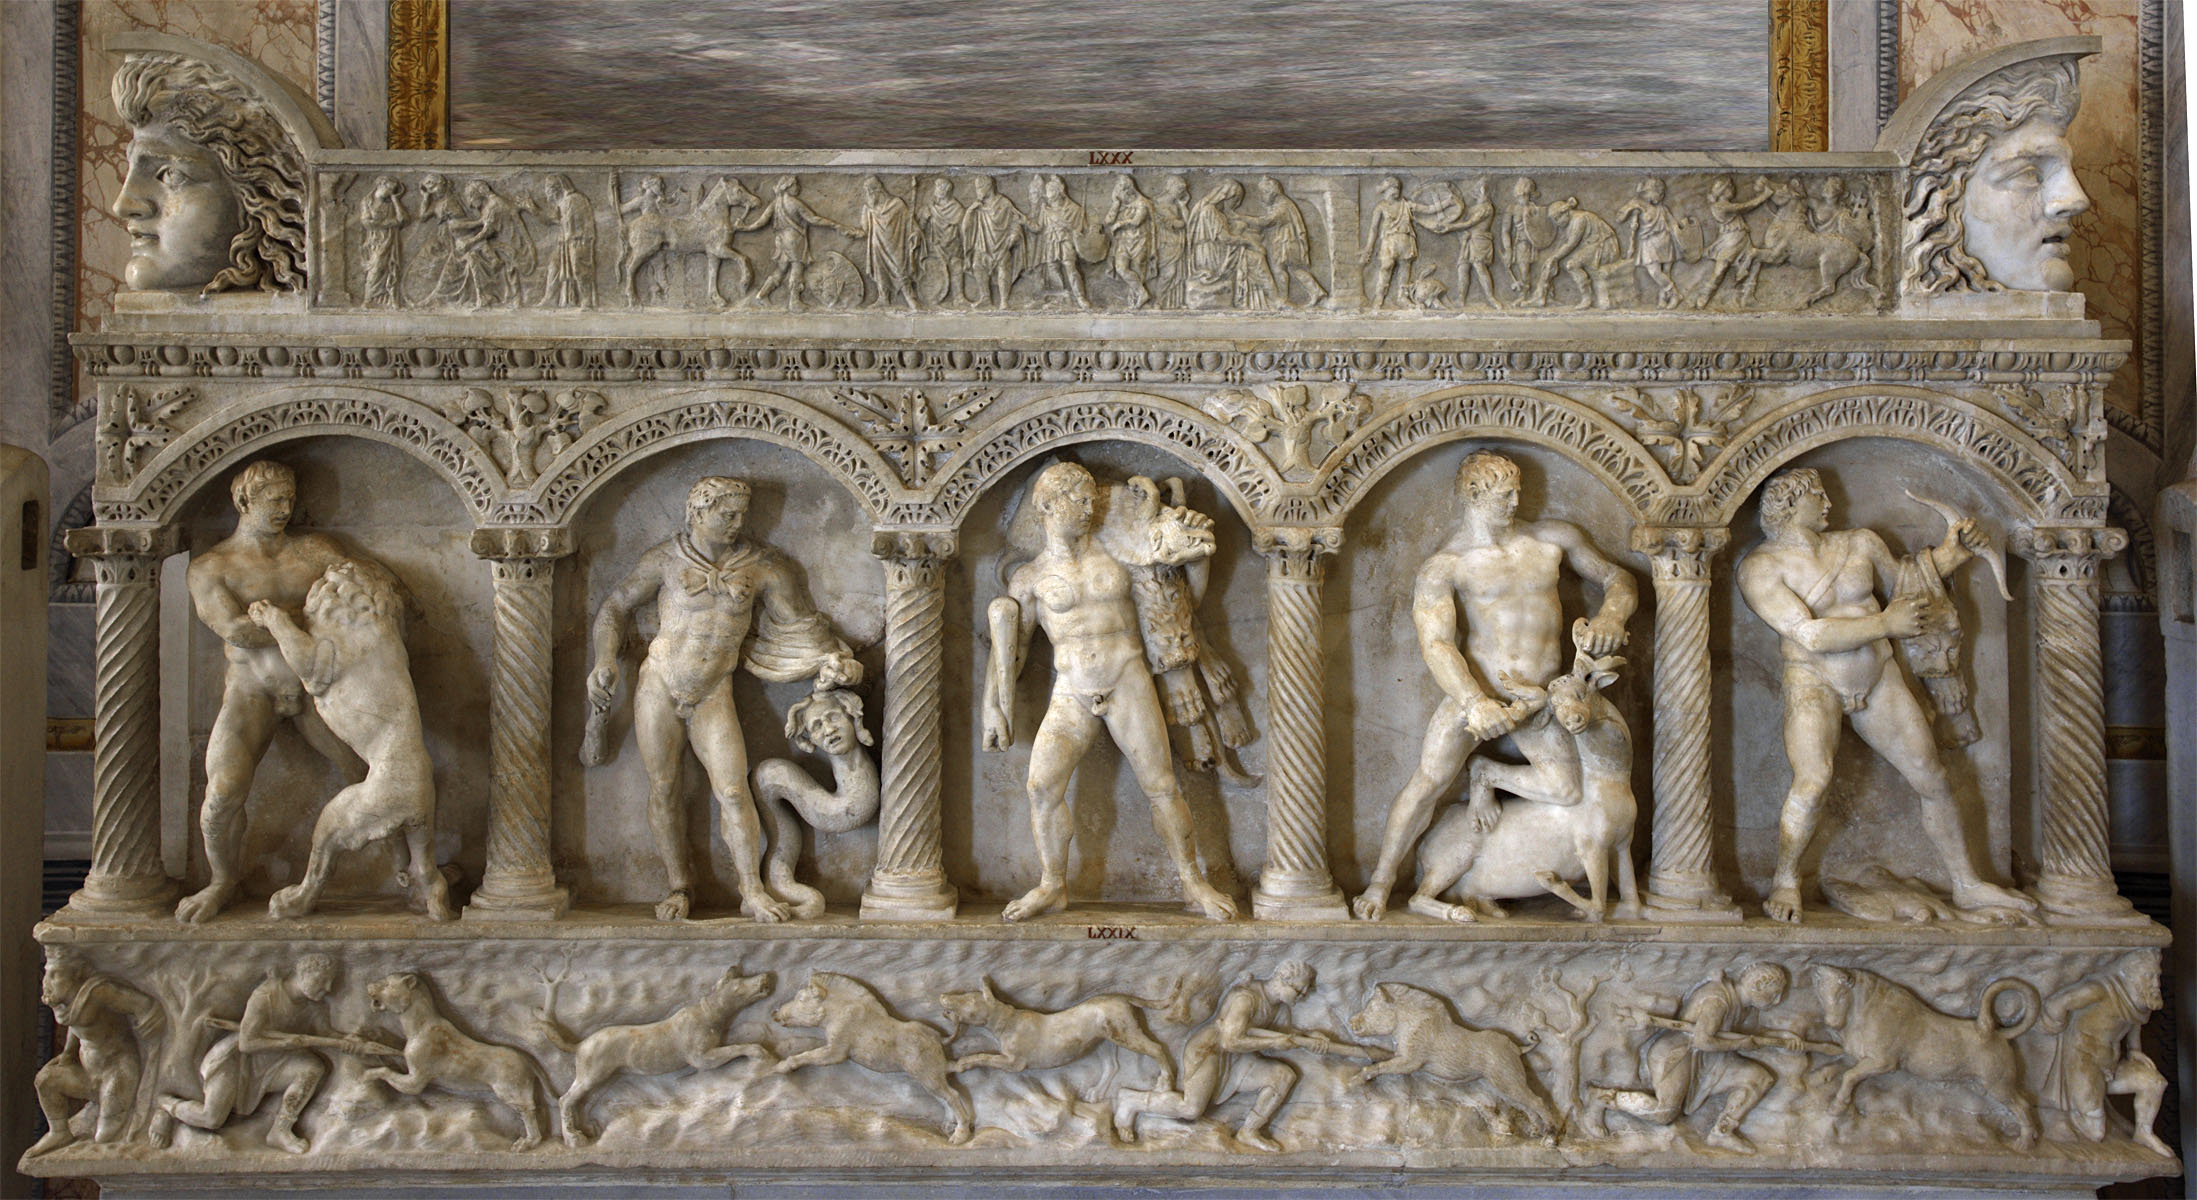 Front of columnar sarcophagus showing the Labours of Heracles and scenes of hunt. Frieze of a sarcophagus lid showing Amazons at the Trojan War. Acroteria. Front wall: asiatic marble. 160 CE.  Inv. No. LXXIX / 79. Lid: Italian marble. 2nd cent. CE.  Inv. No. LXXX / 80. Acroteria: asiatic marble. Rome, Museum and Gallery of Villa Borghese, Room II